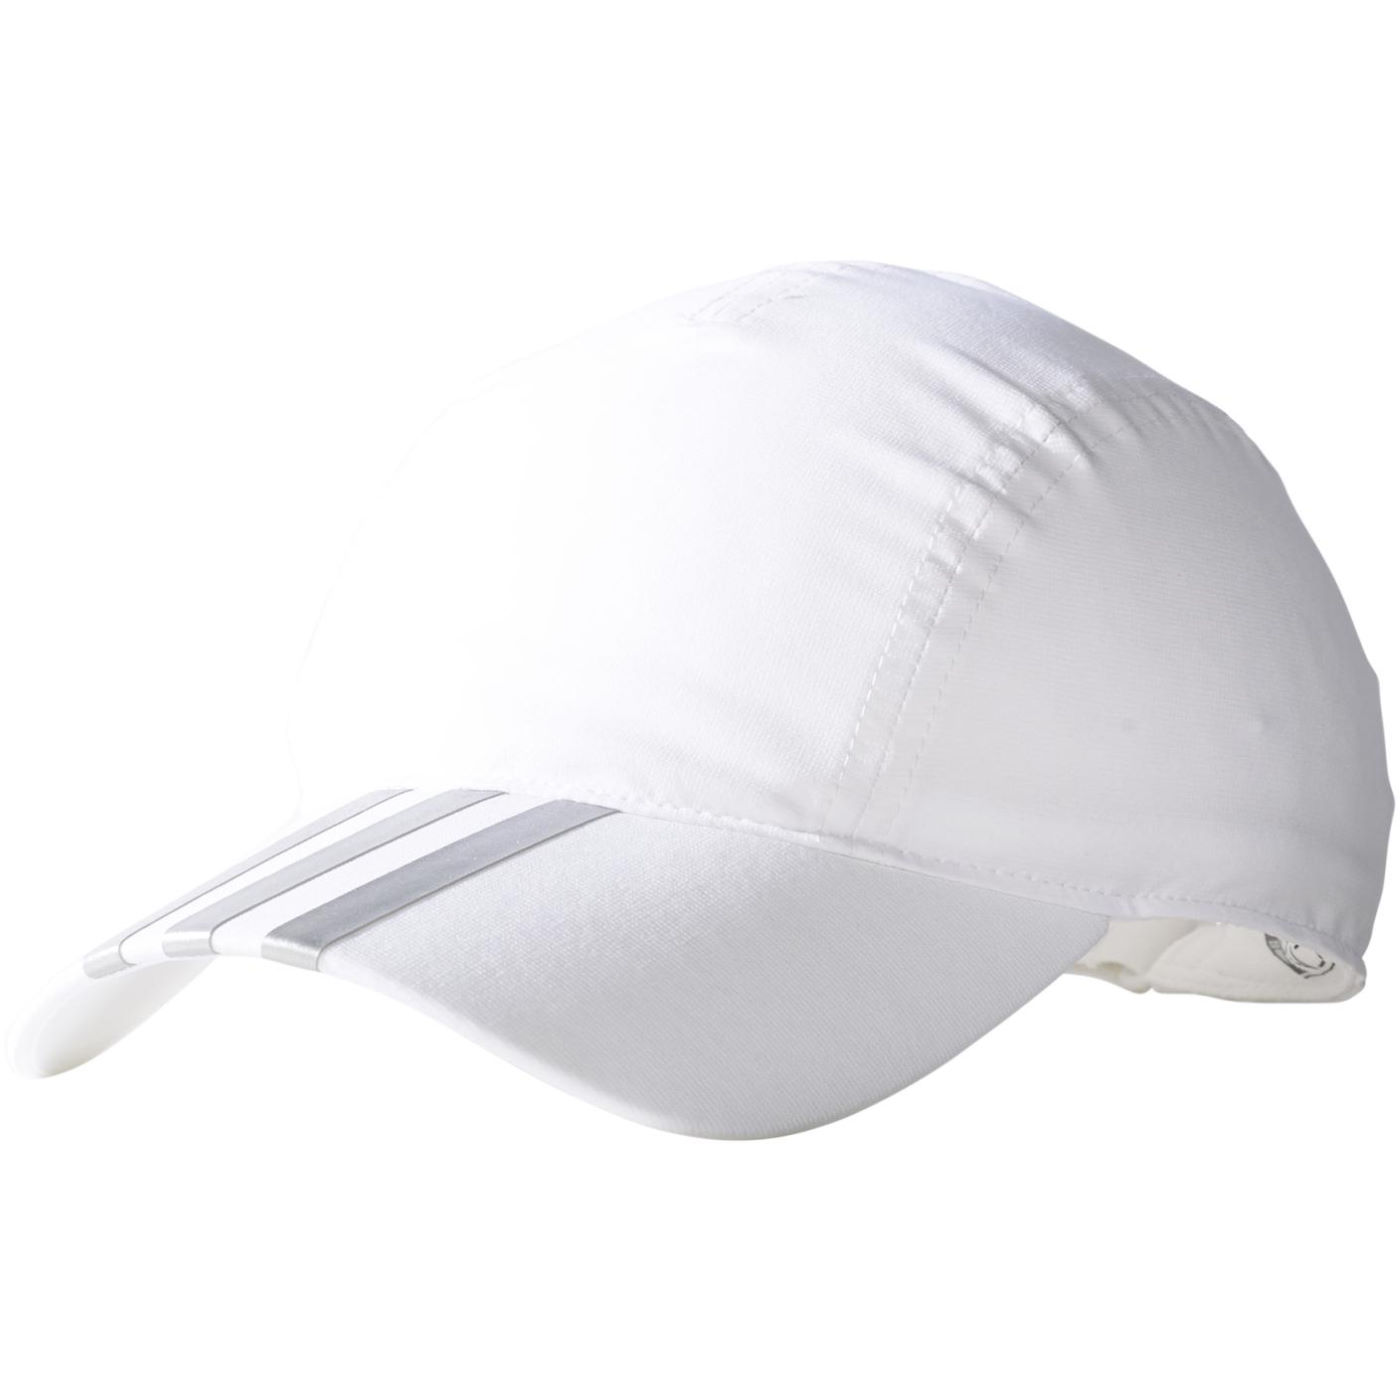 Adidas Cap White Custard Online Co Uk